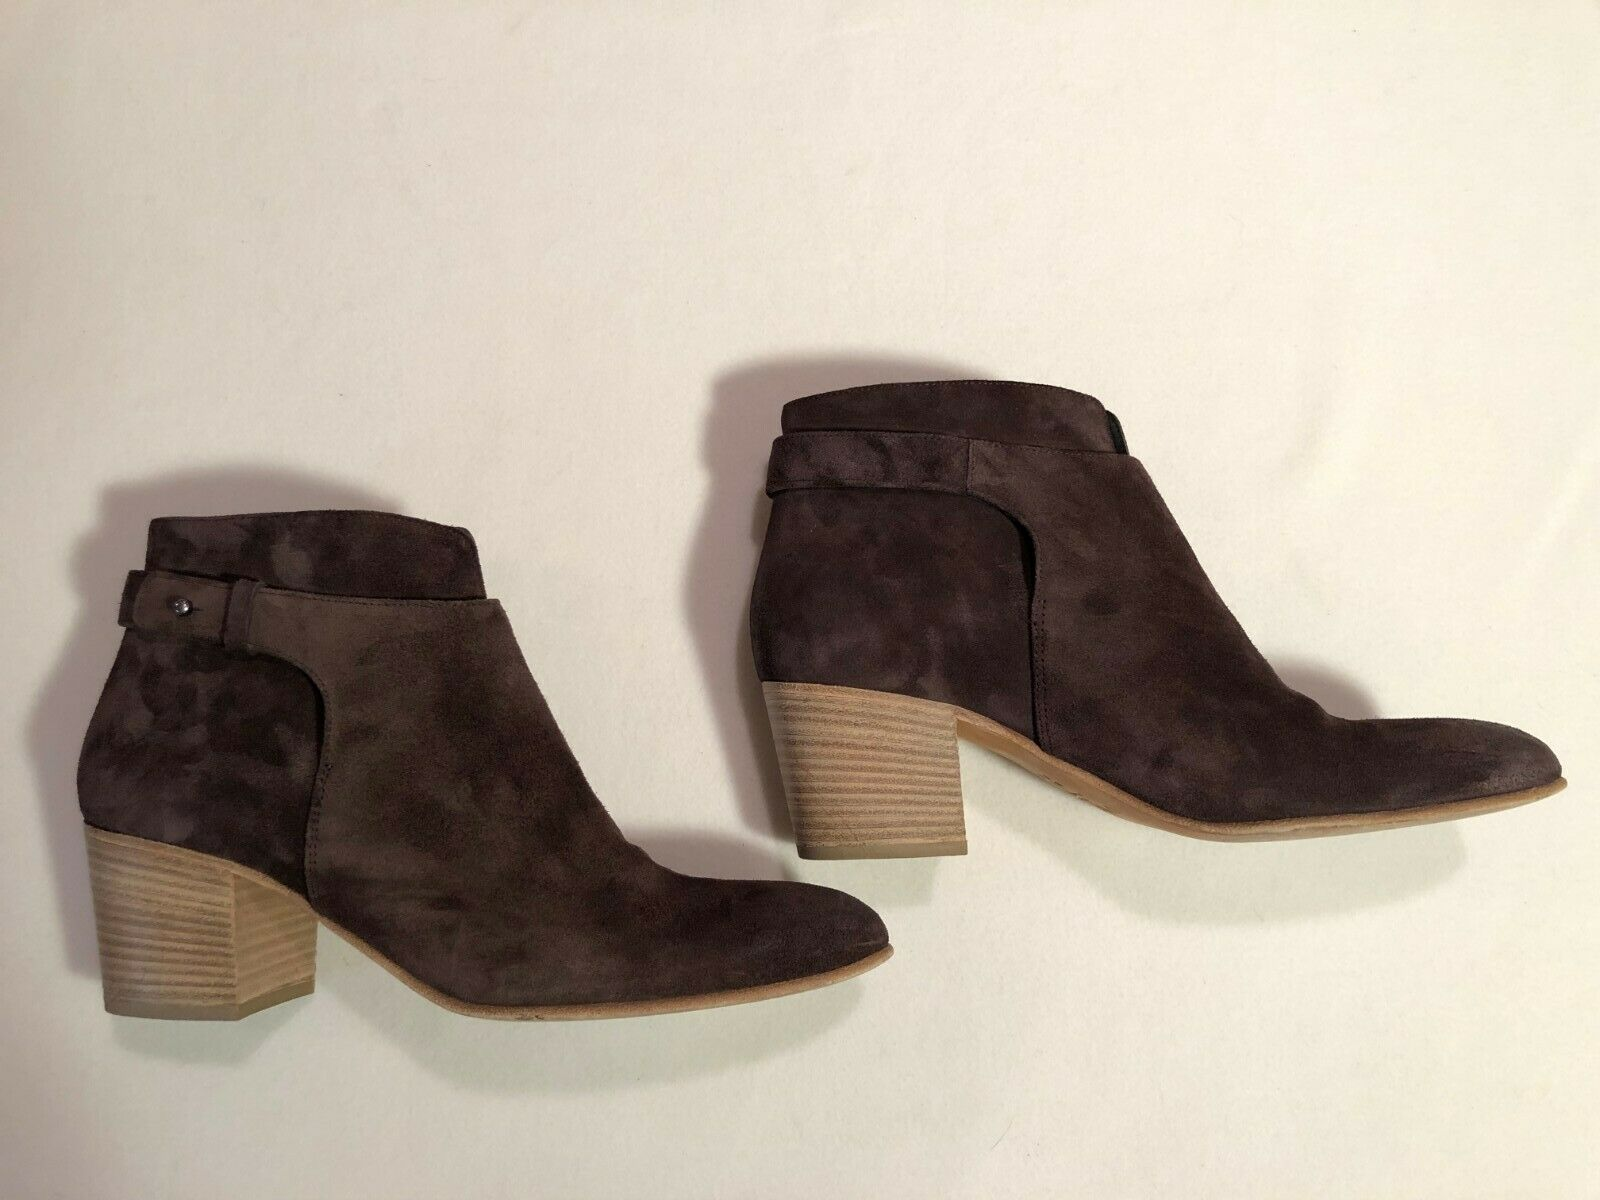 Vince brown suede ankle boot size 10 2.5 in heel